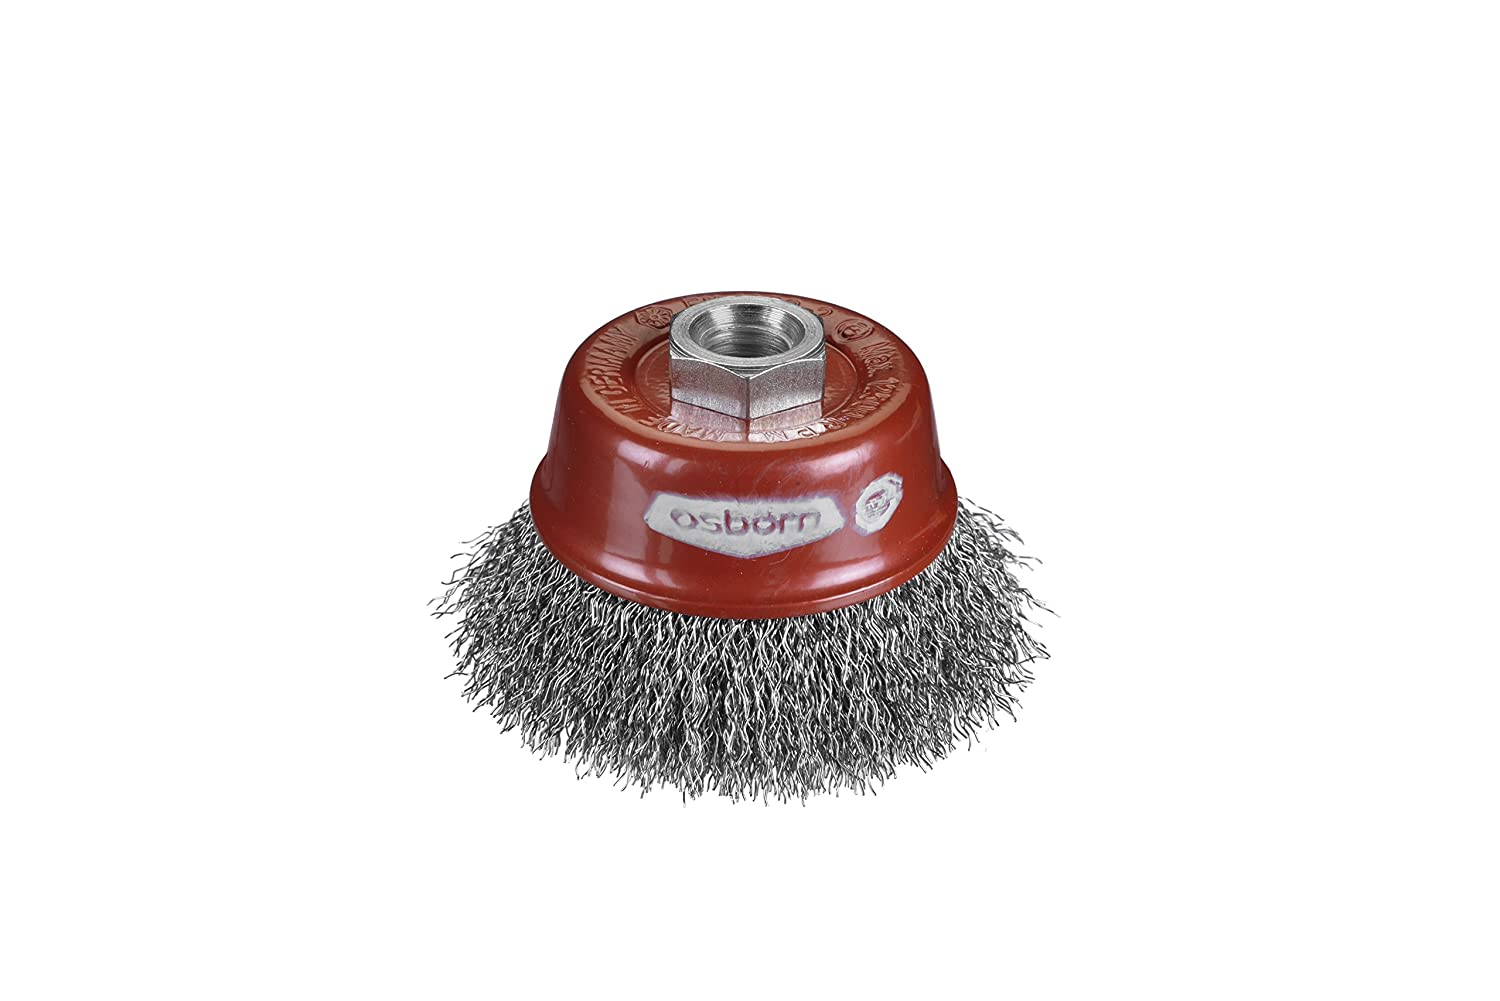 Osborn Dronco 0002613161 Cup Brush (Pack of 10)